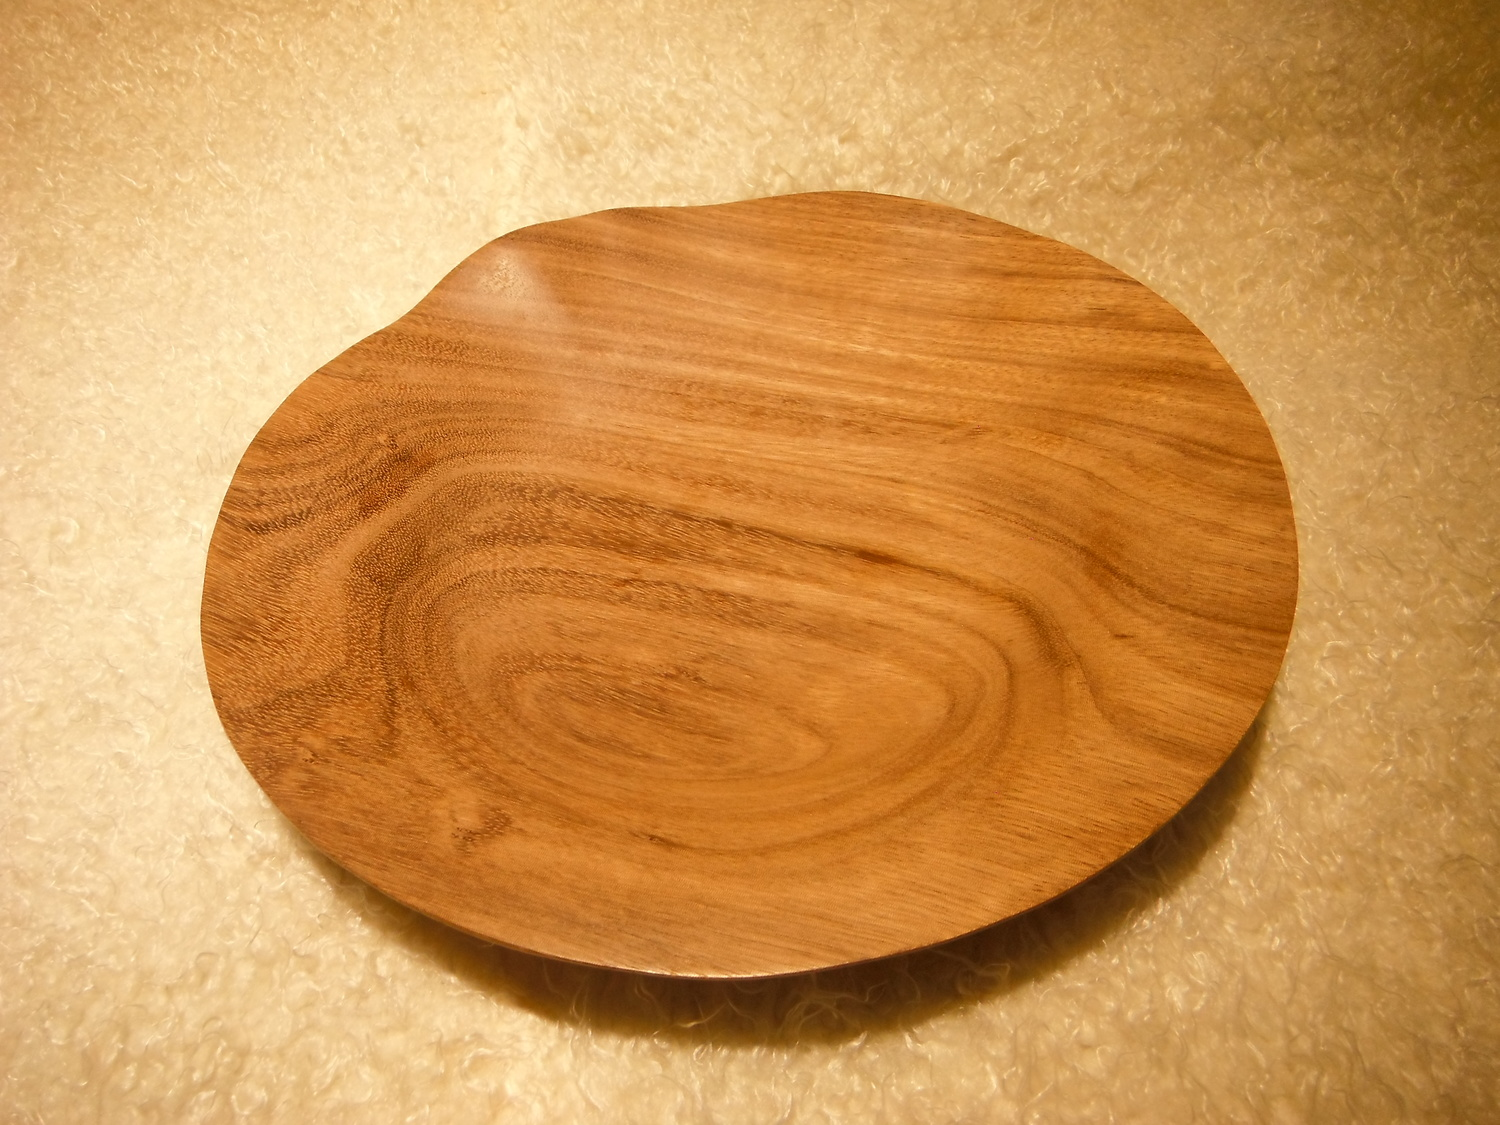 Liaochun Hand-Carved Wooden Plate